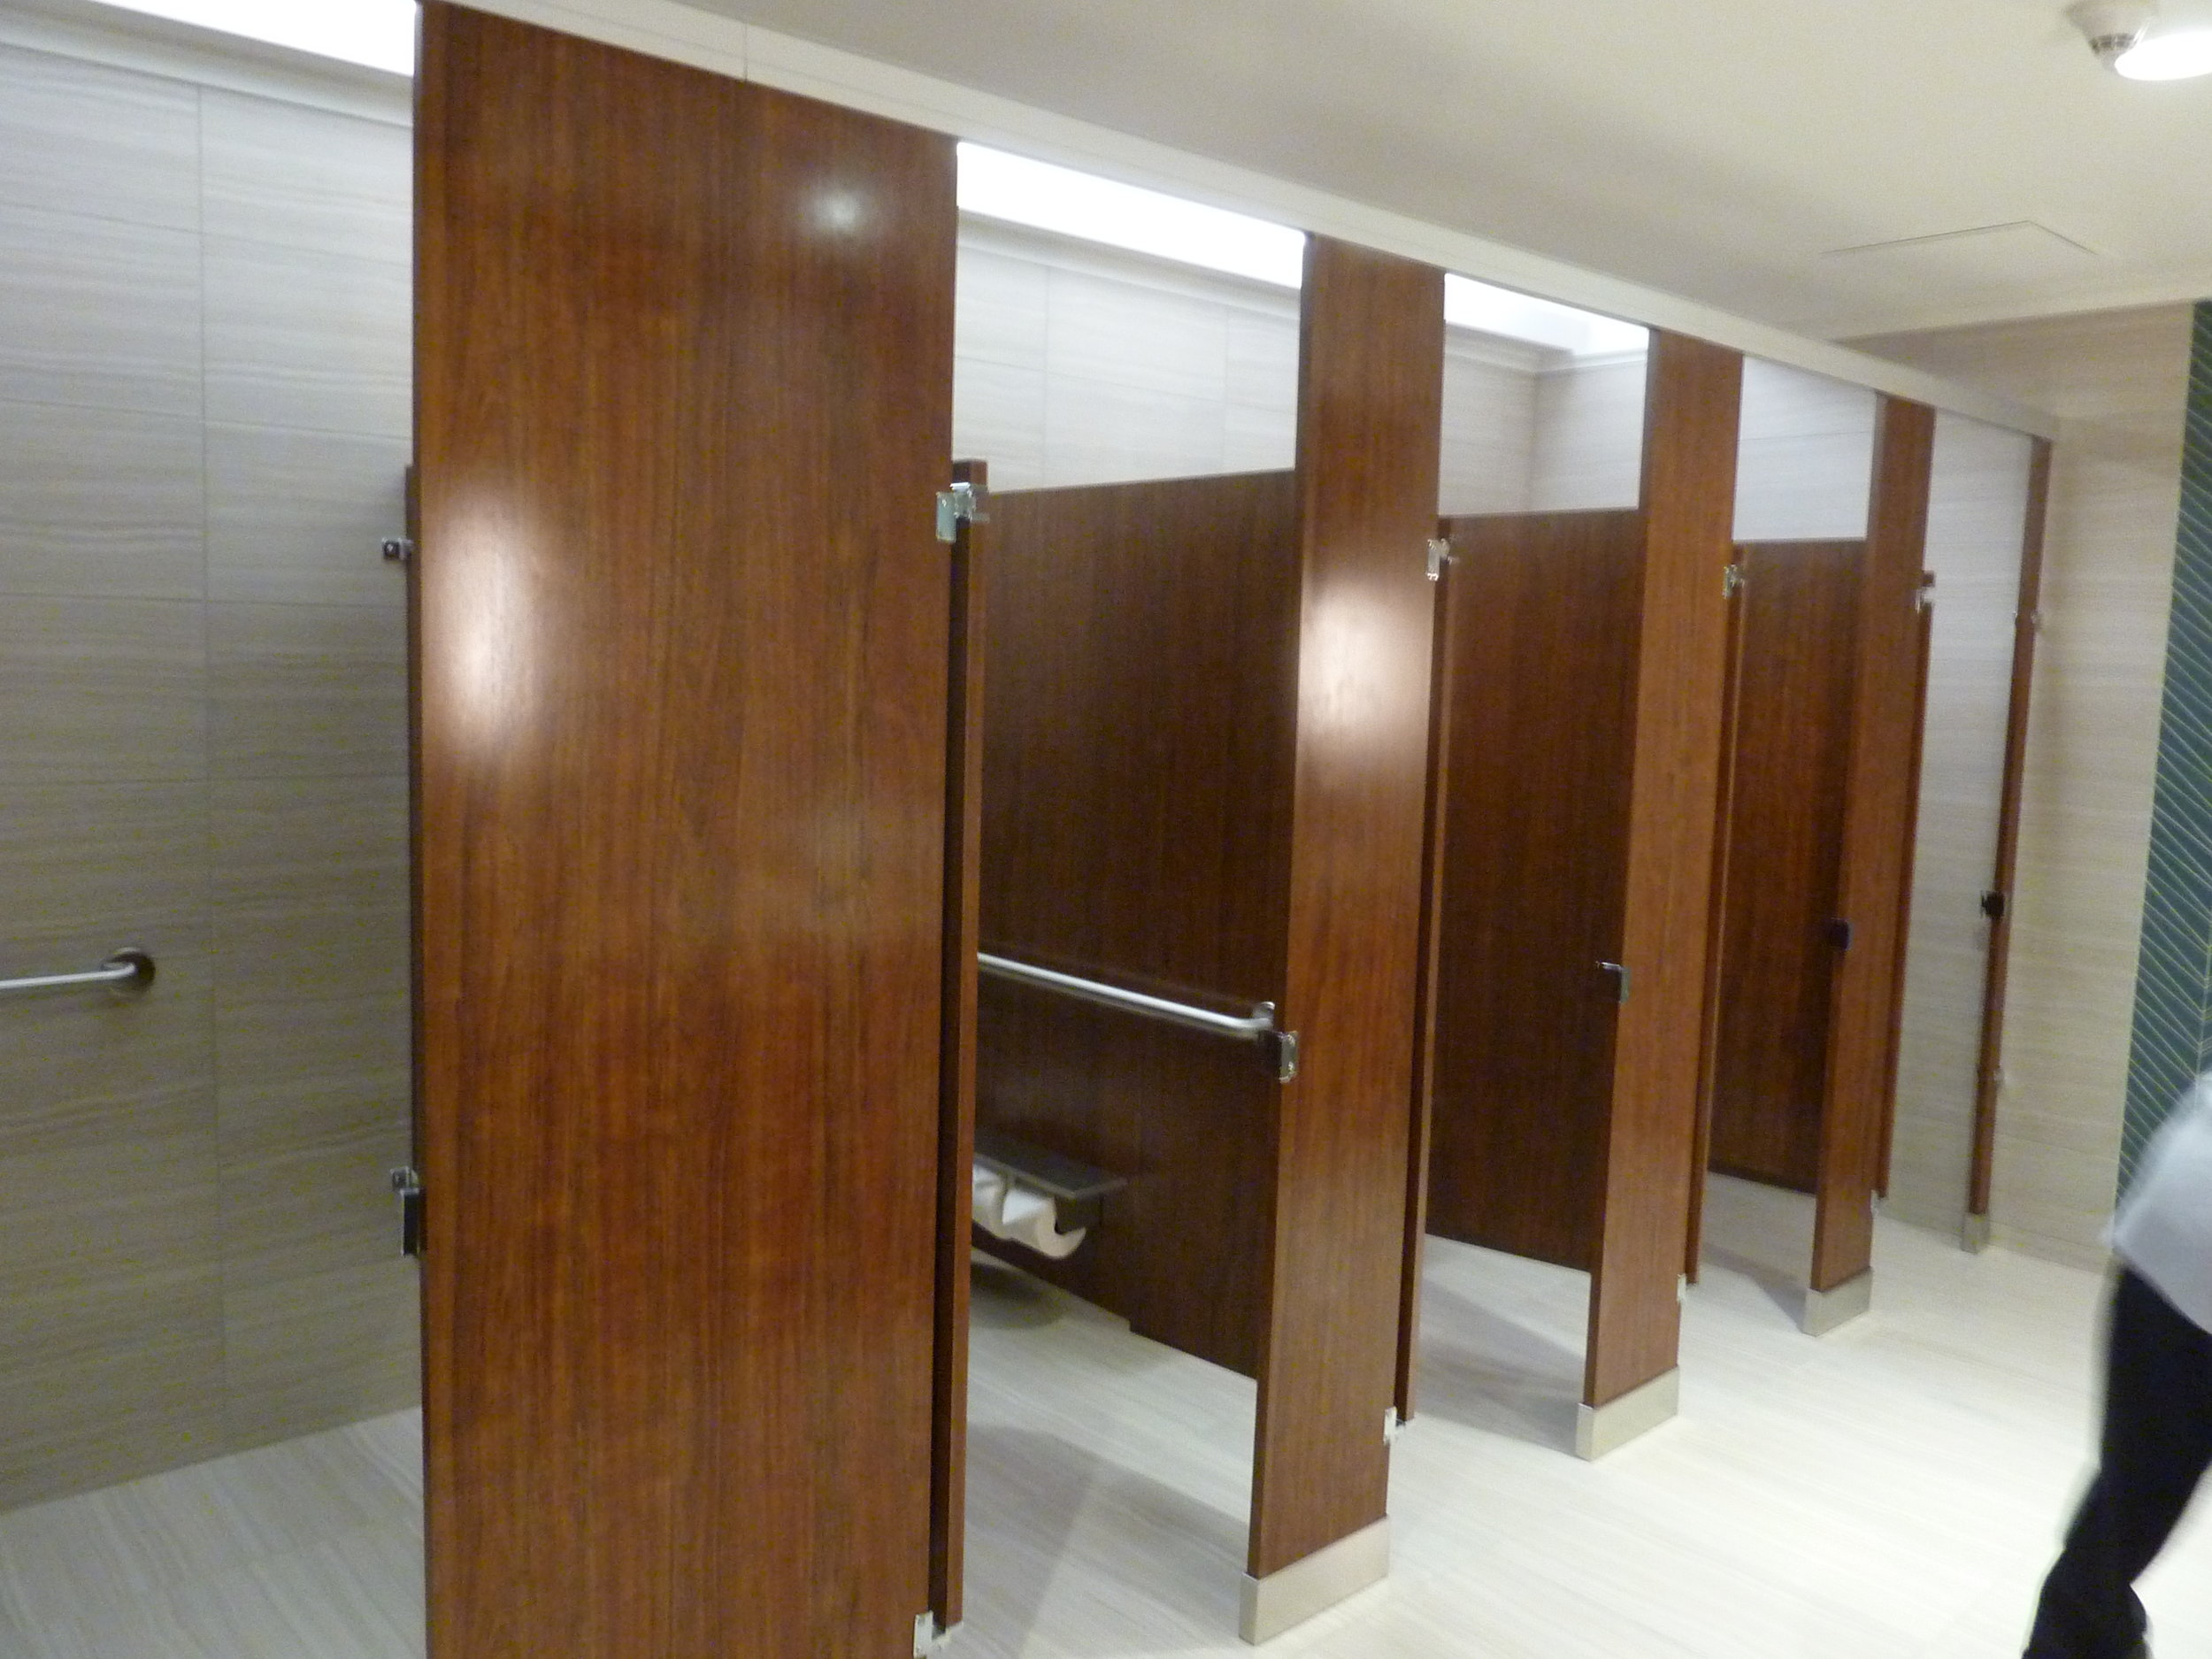 Commercial Restroom